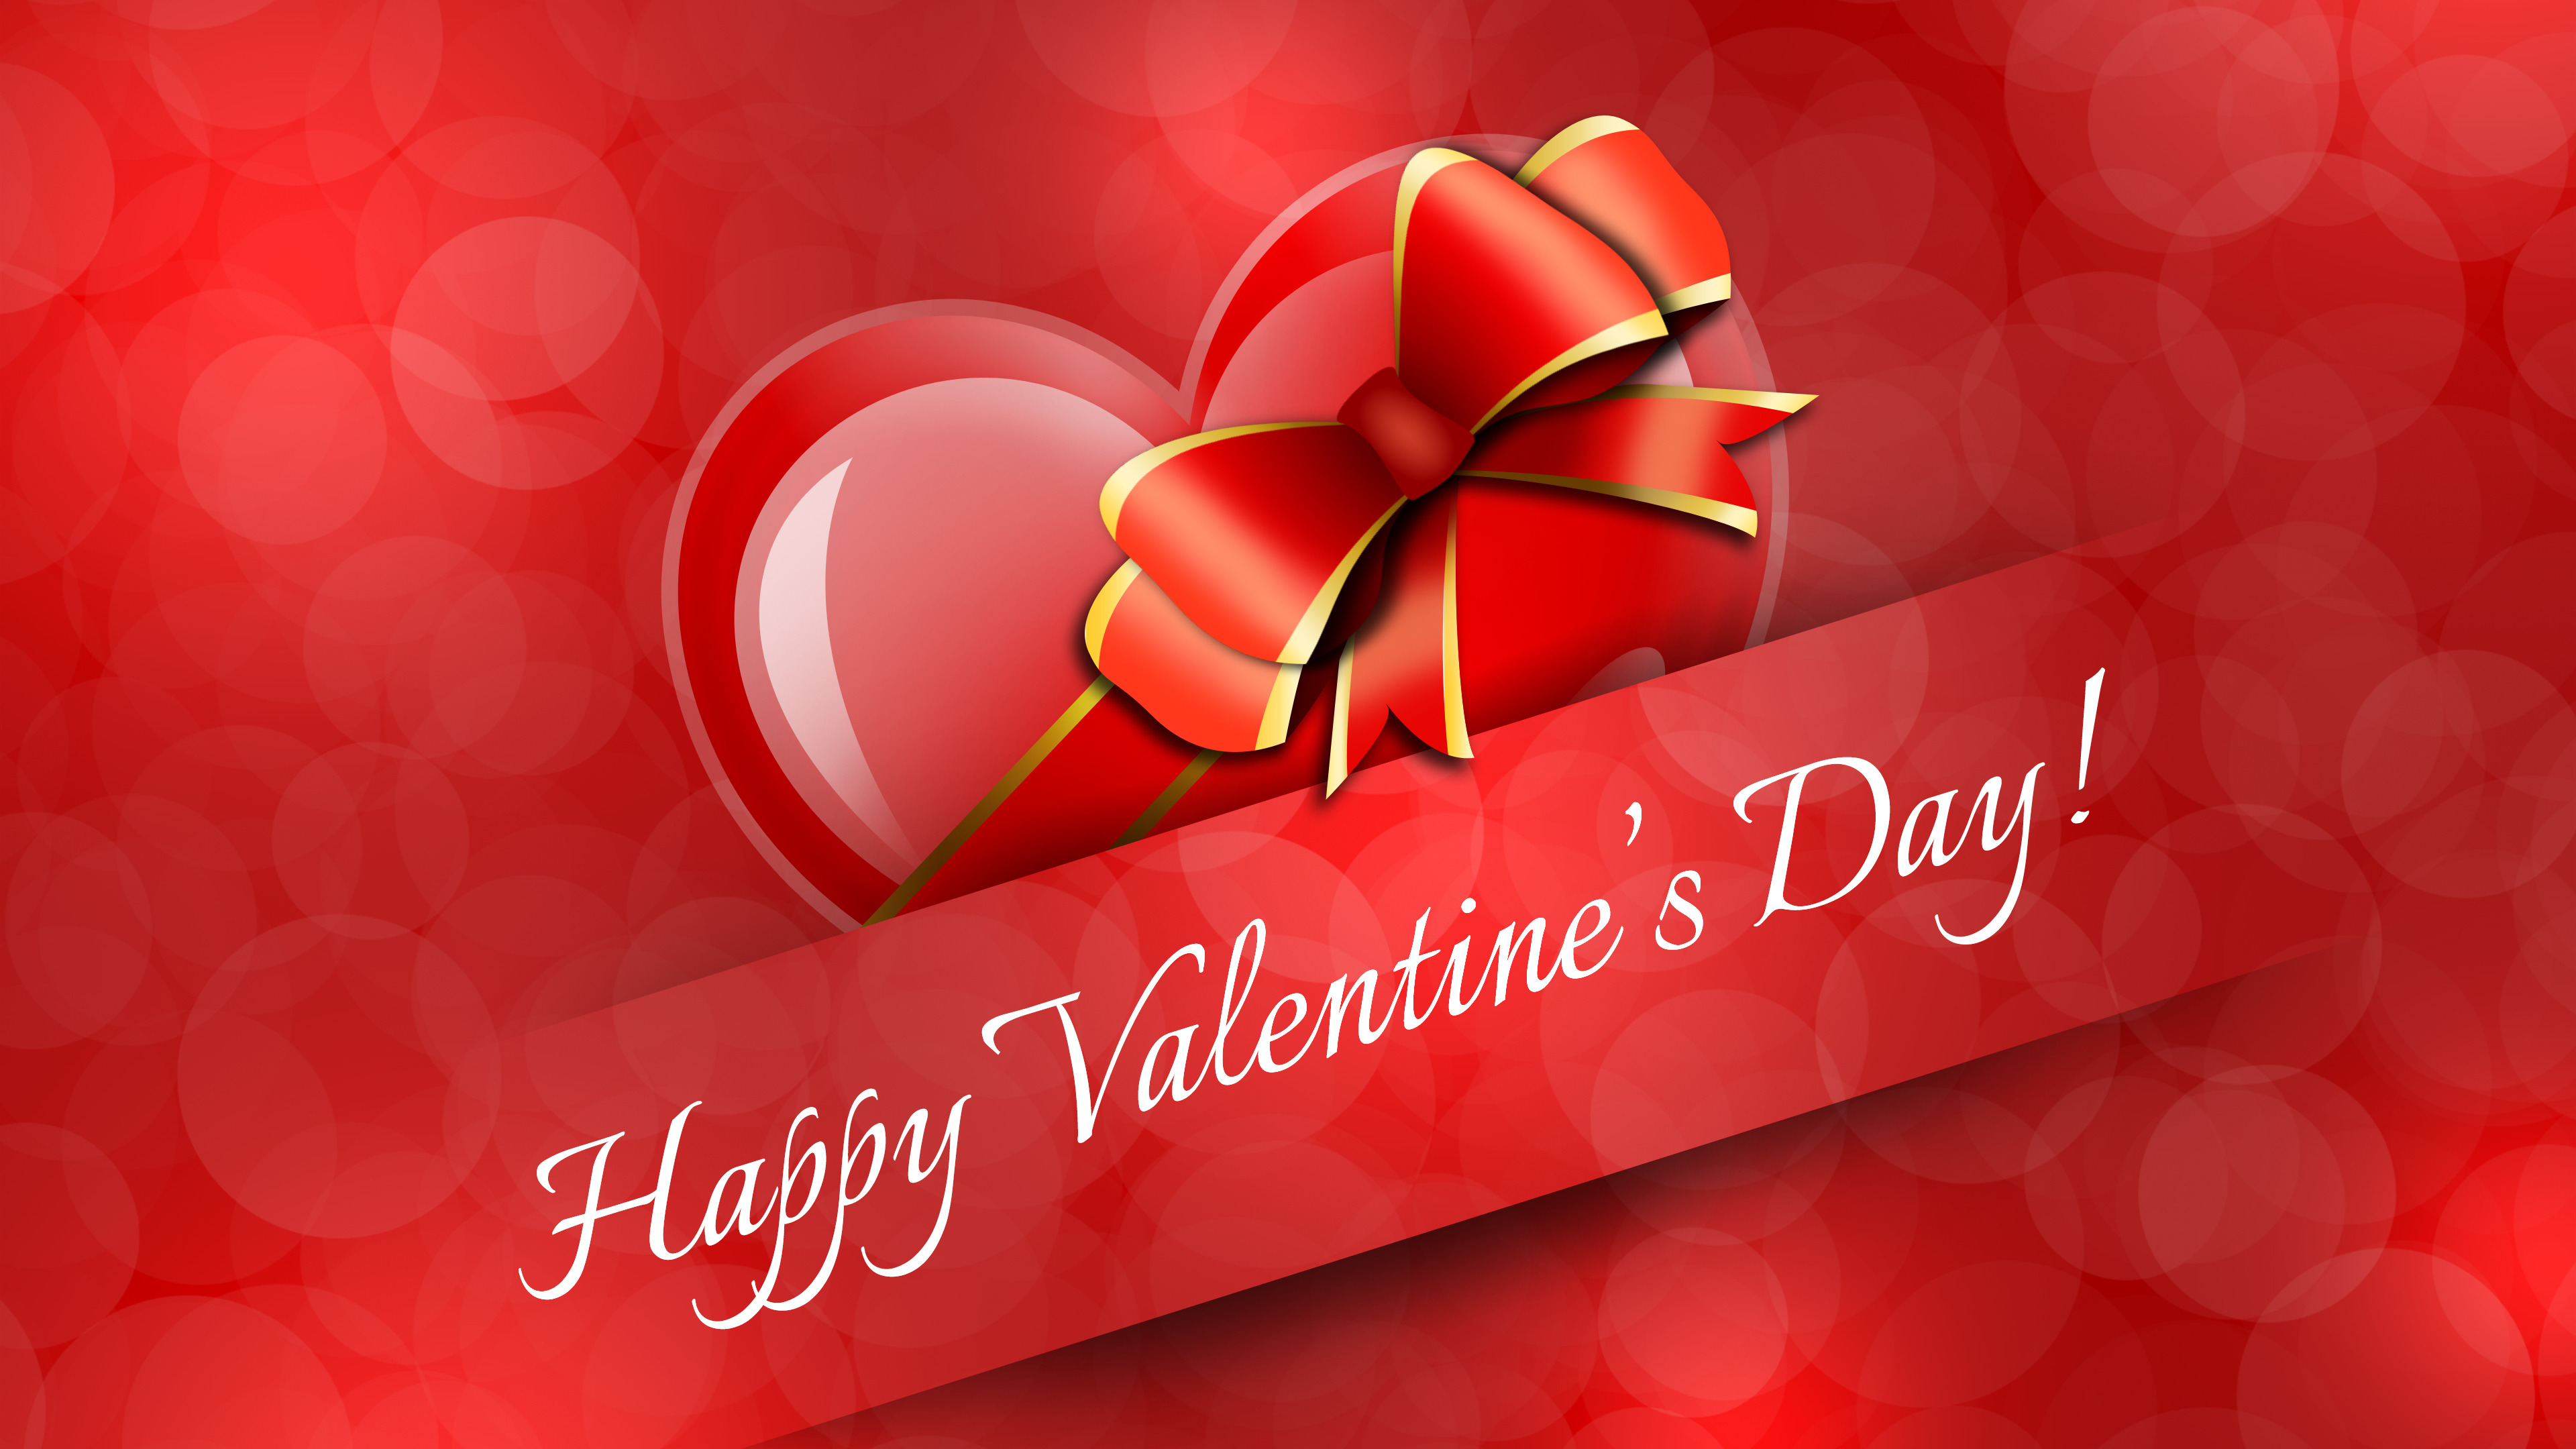 Best HD Happy Valentines Day 2015 Wallpapers For Your Desktop PC 3840x2160